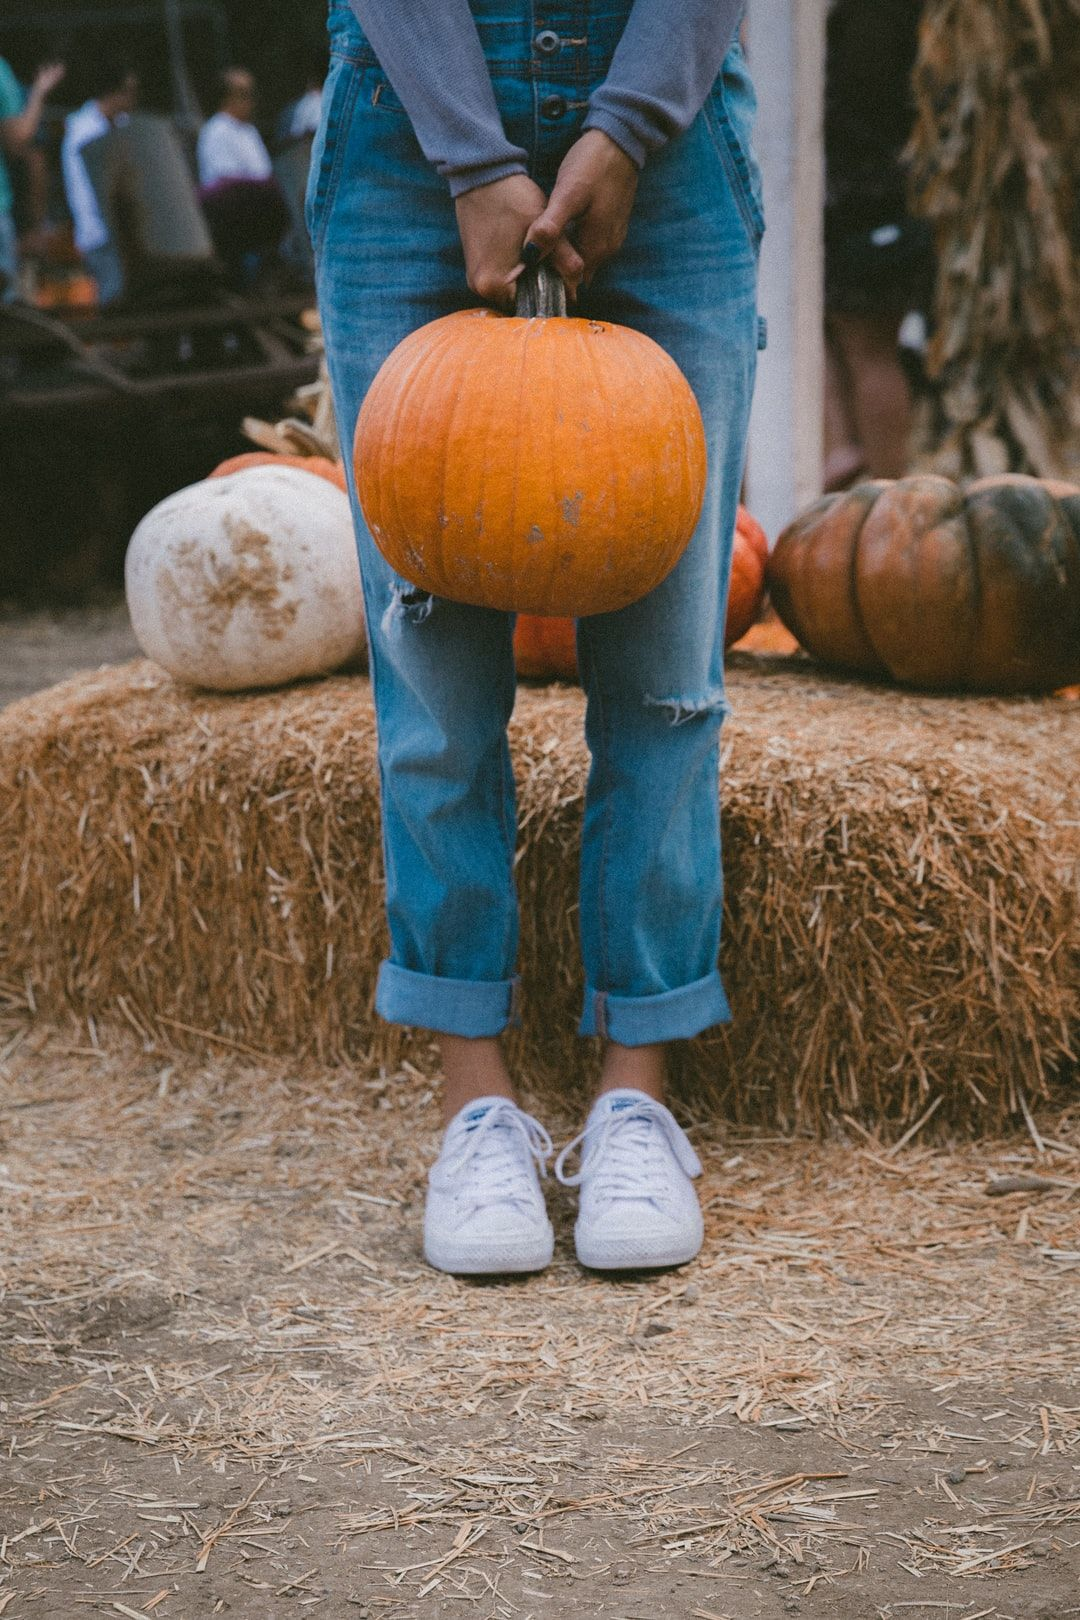 Pumpkin Girl. Download this photo by Jakob Owens on